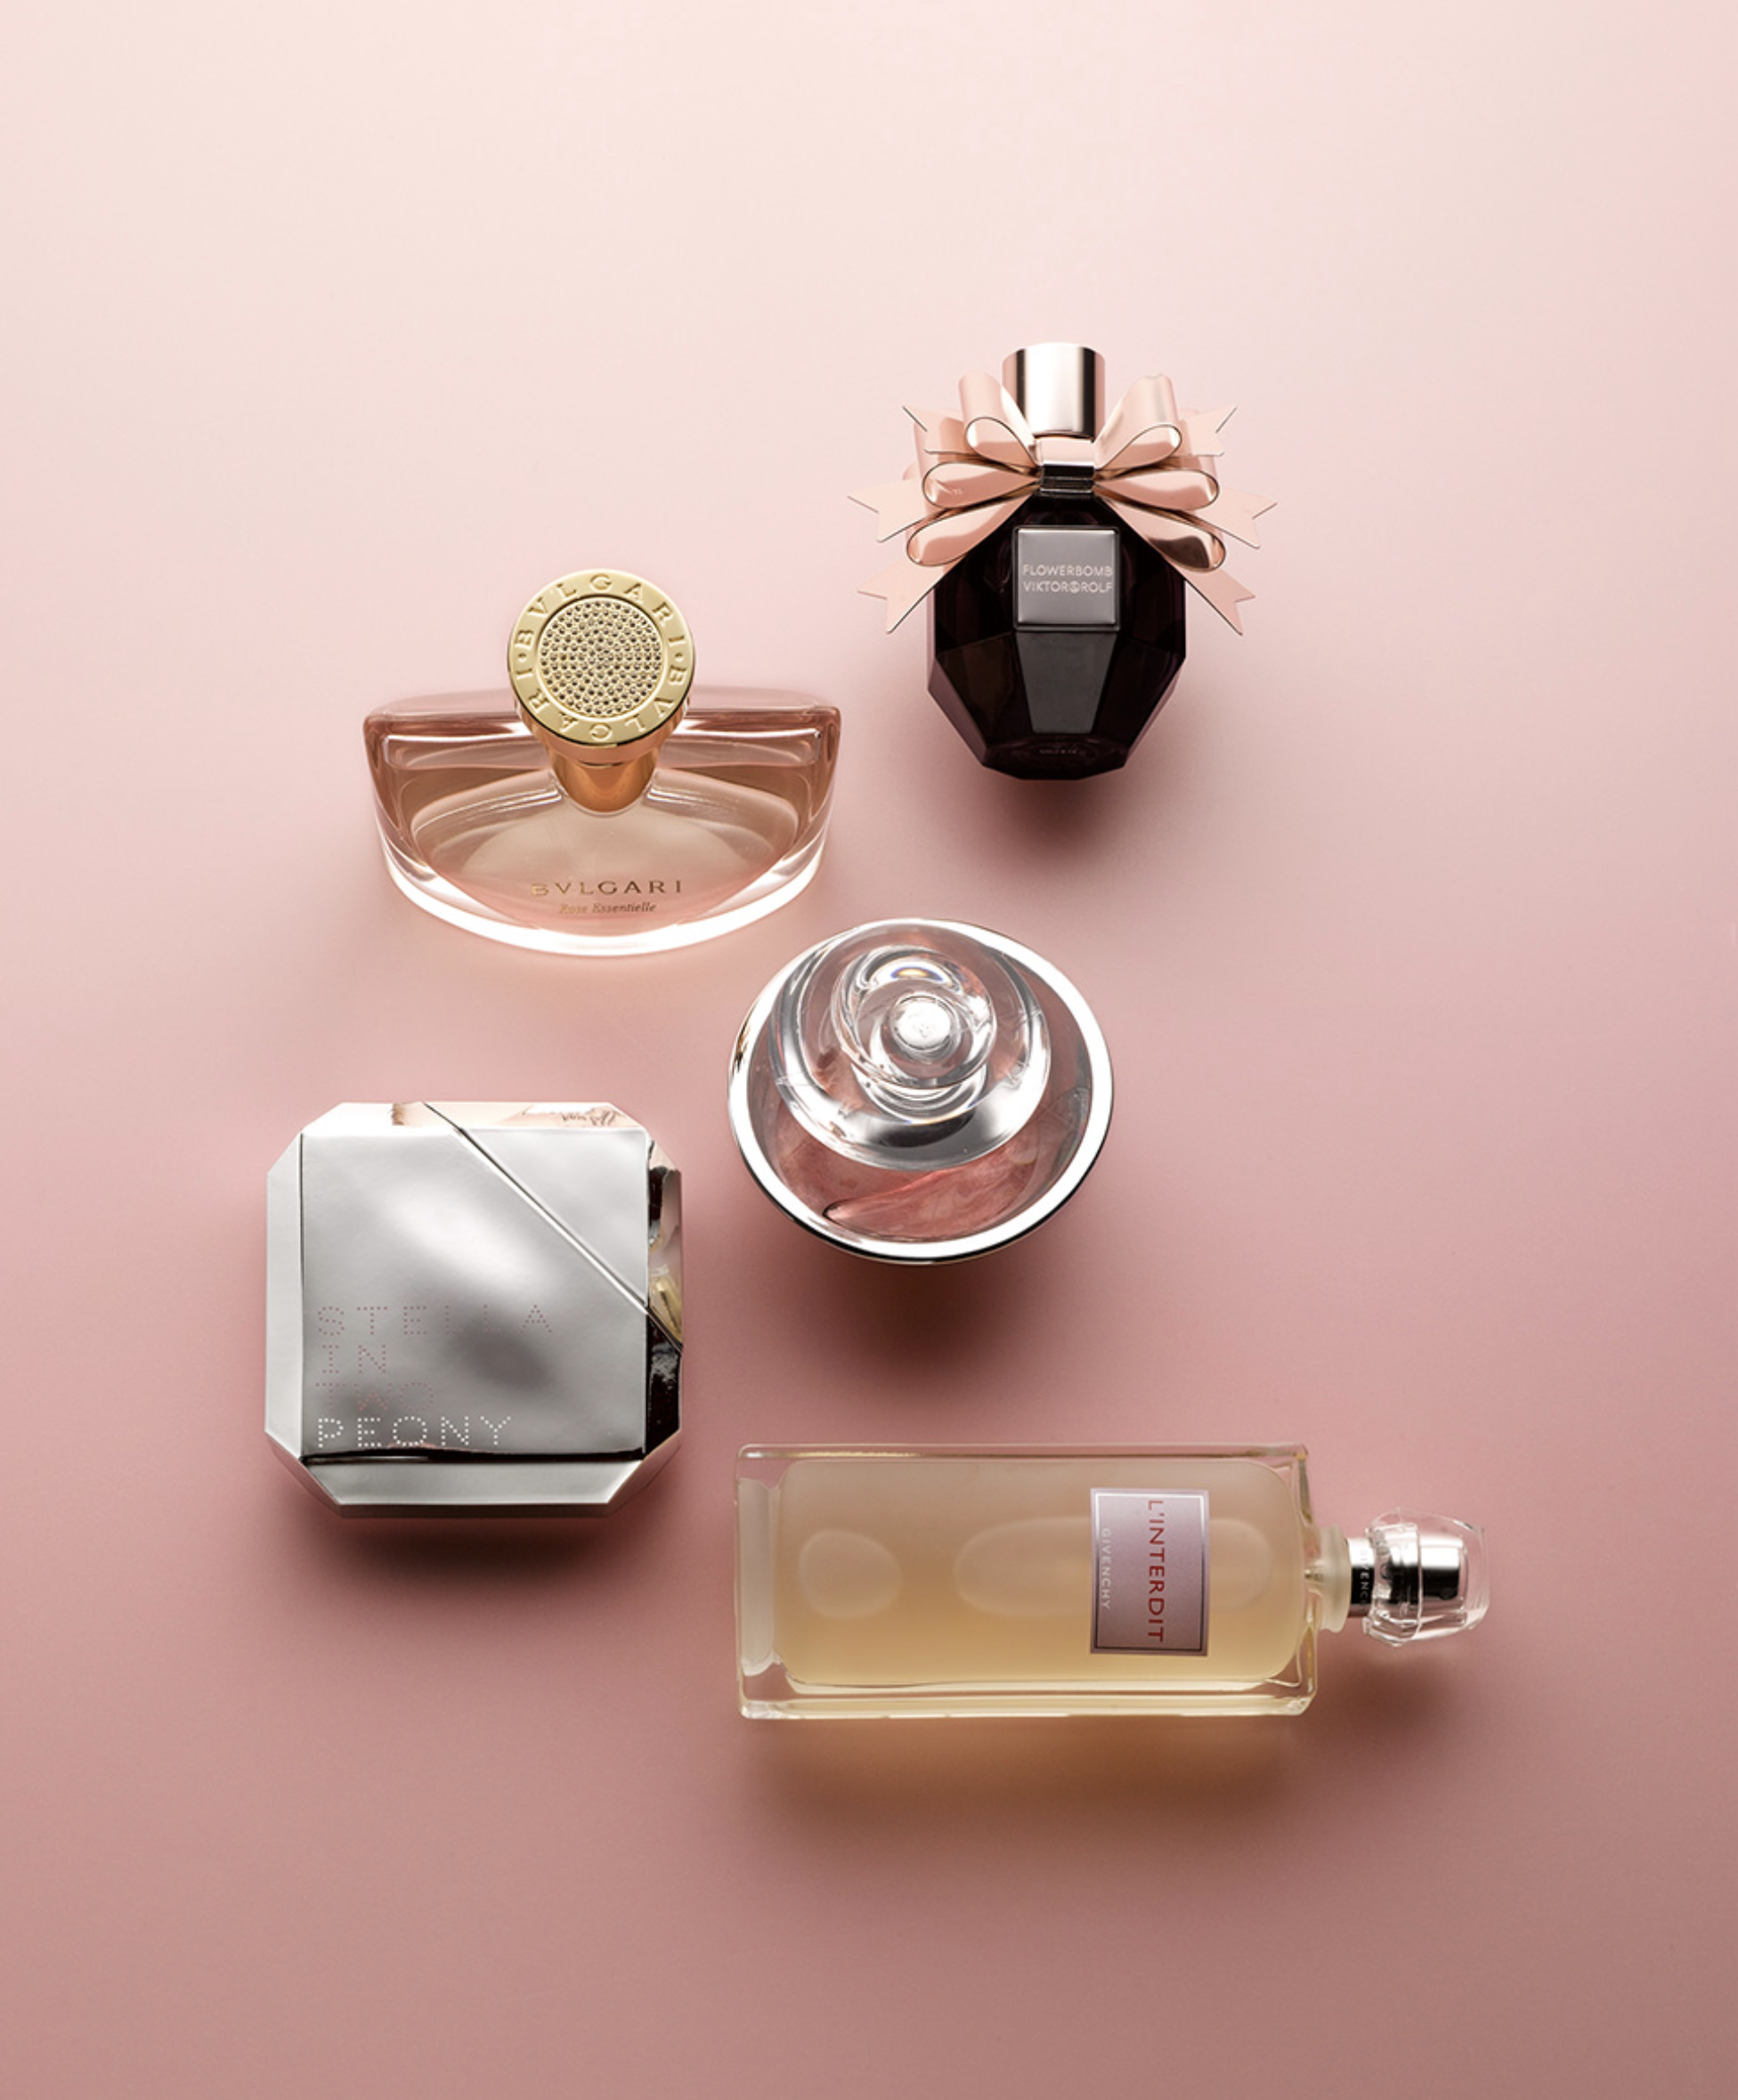 perfumes on pink